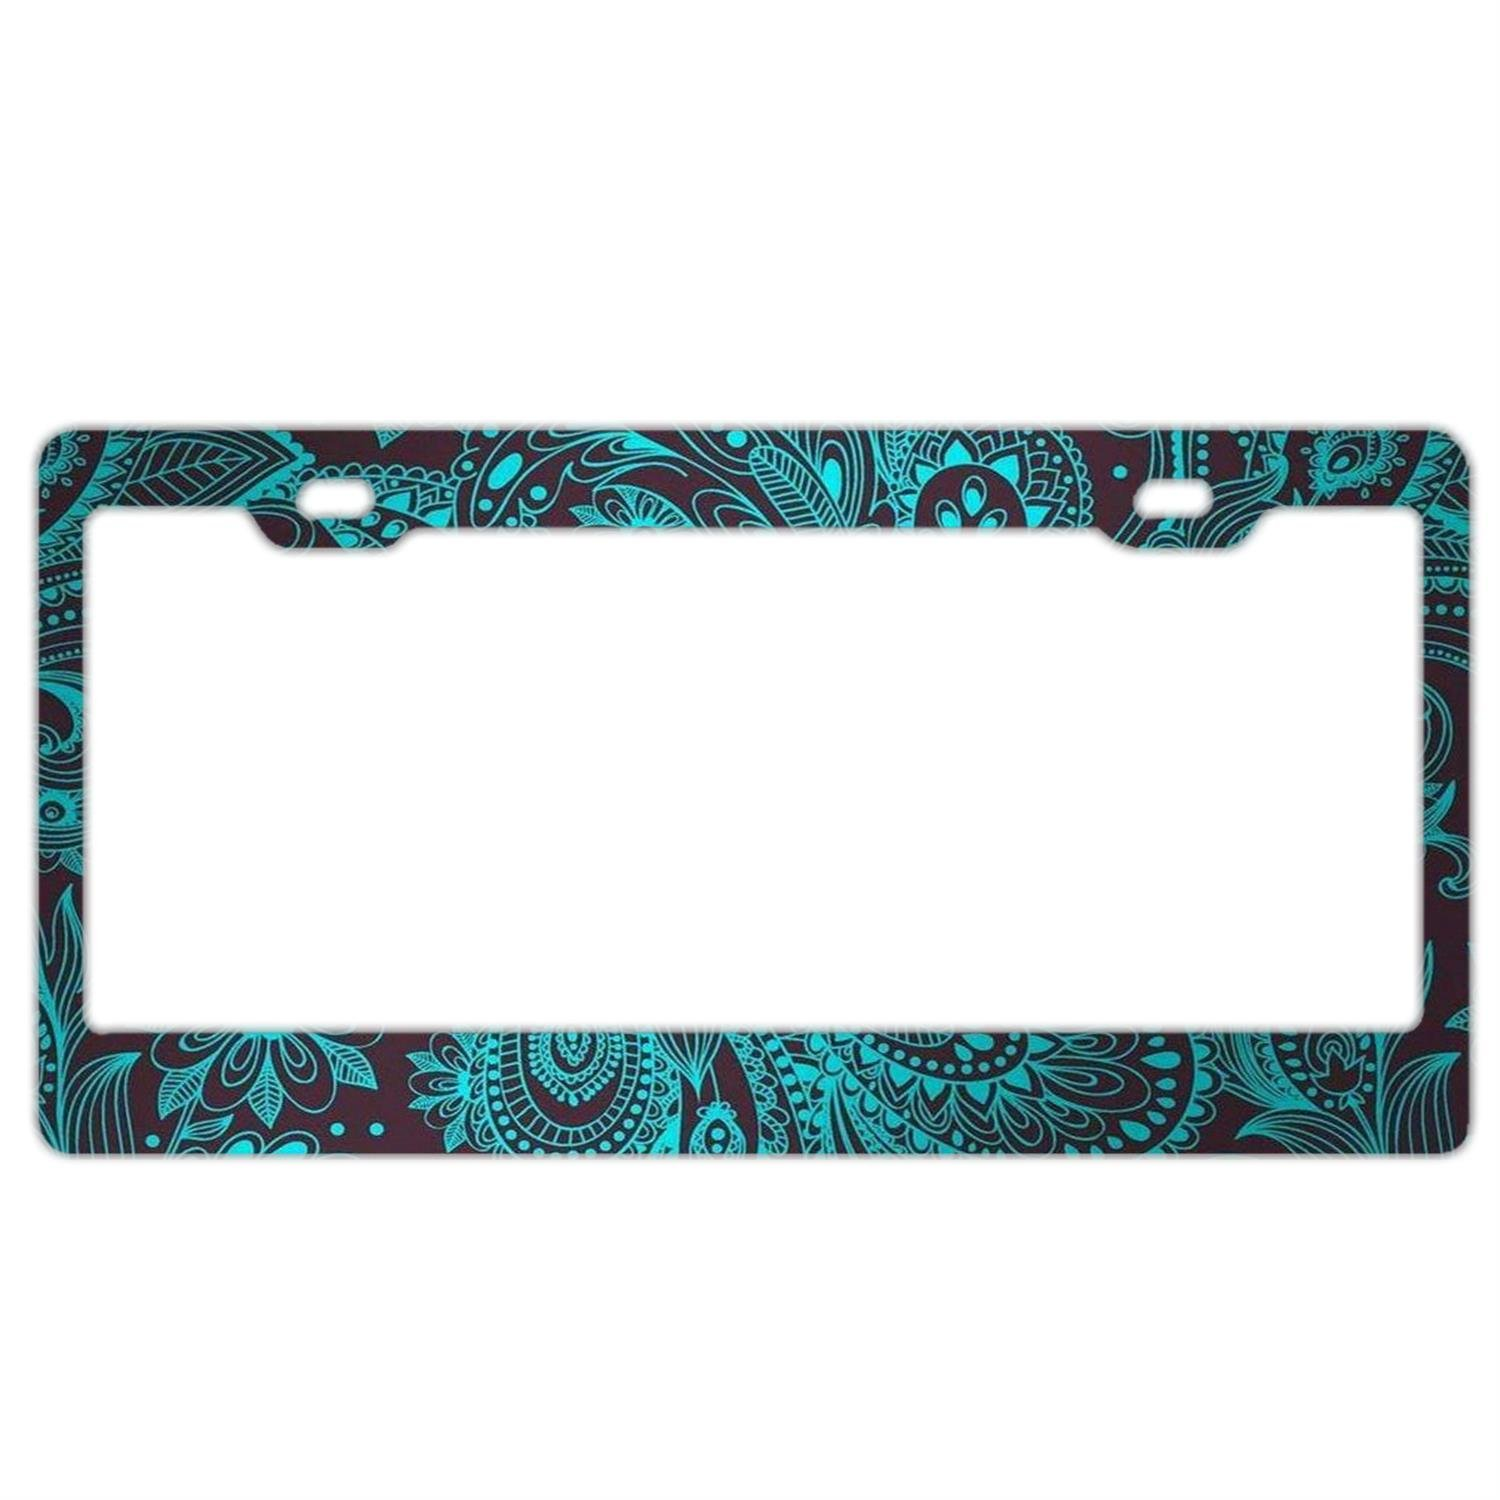 License Plate Frame for Women,Car Licenses Plate Covers Black License Tag Aluminum Metal CooLicensfhrframe